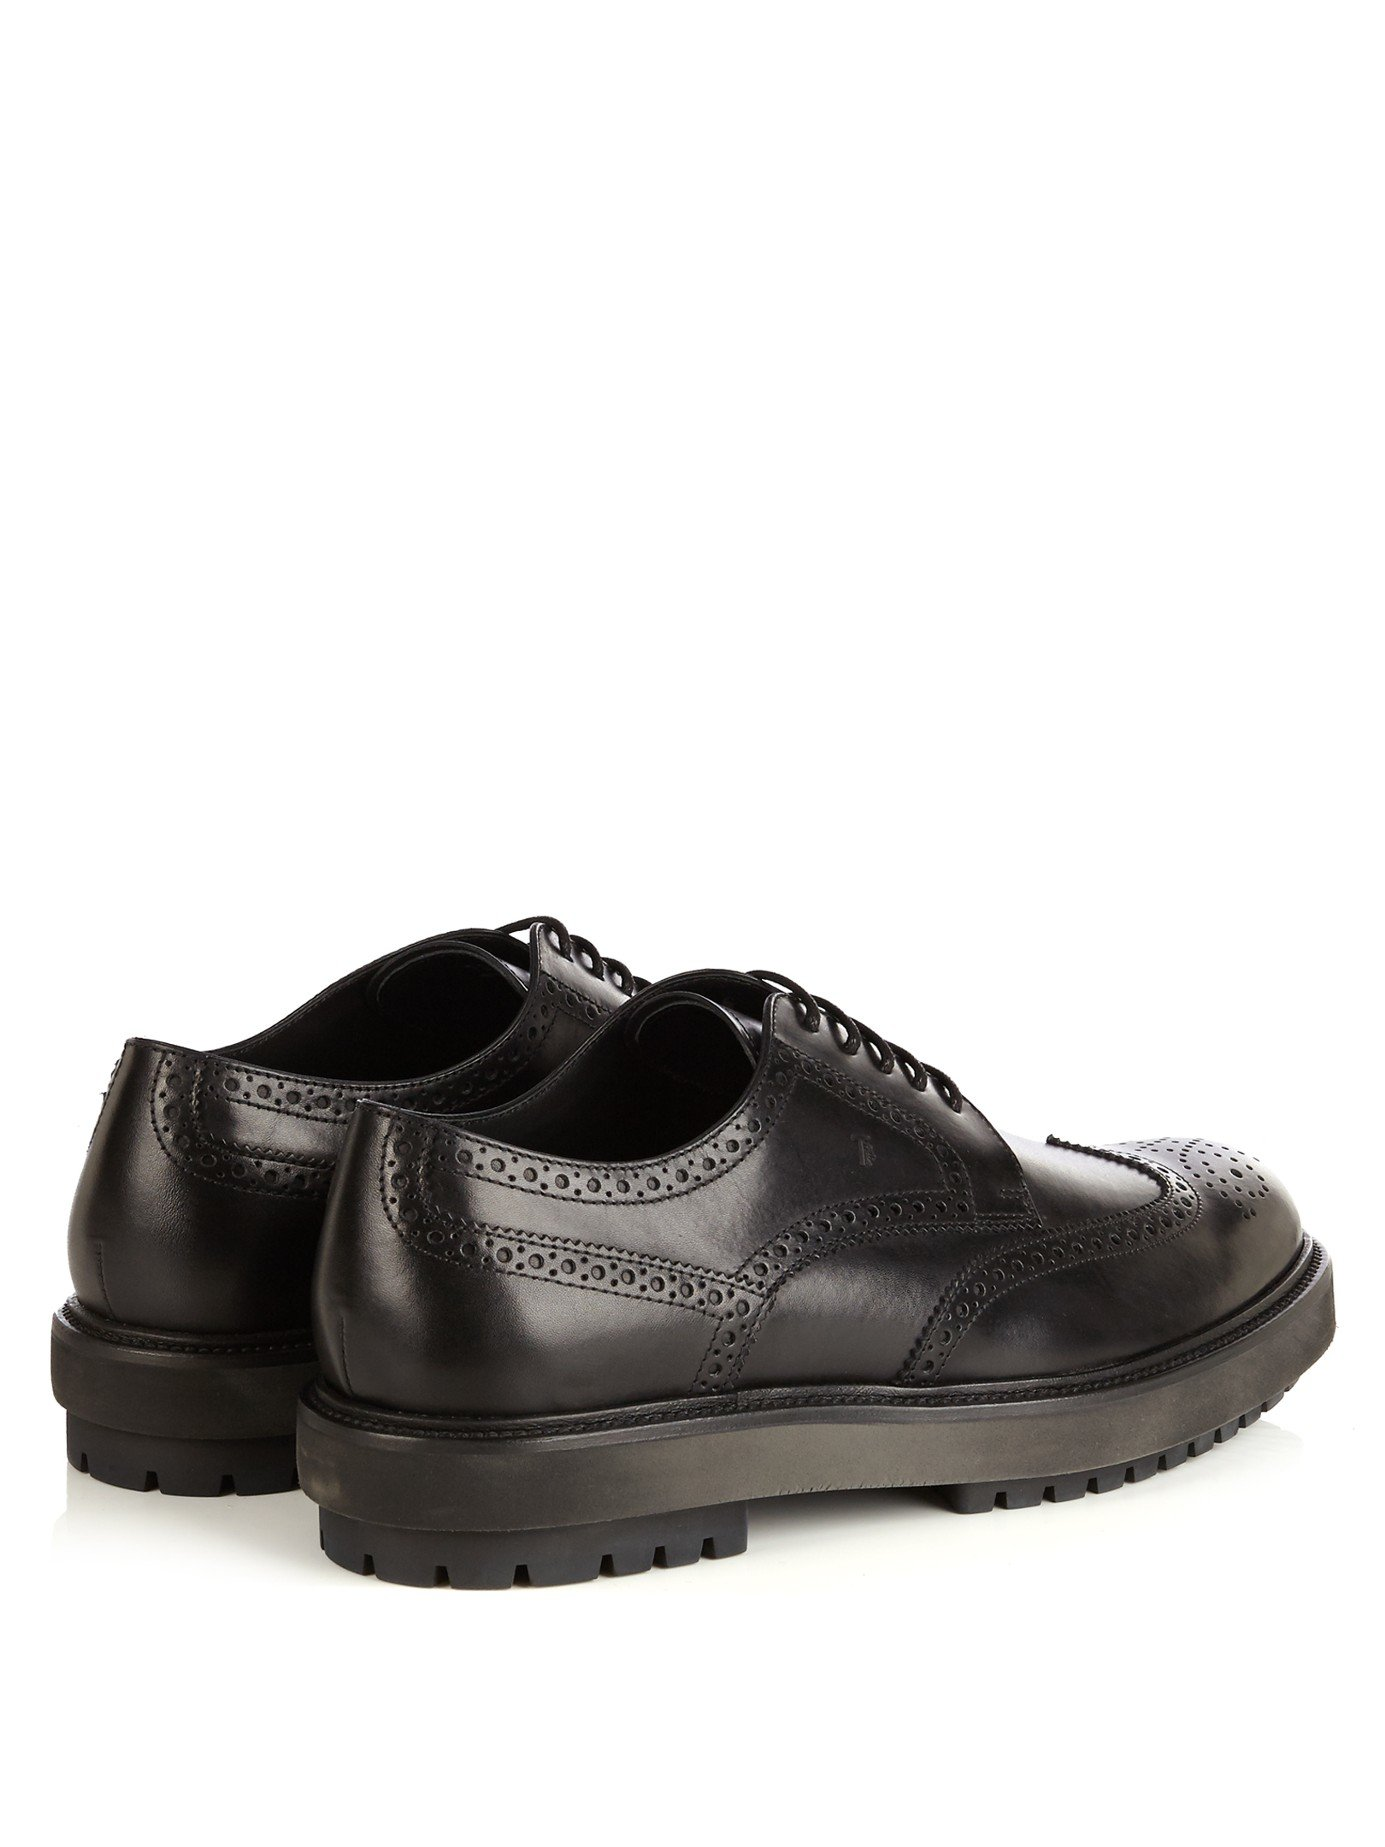 Topman Shoes Brogues Size